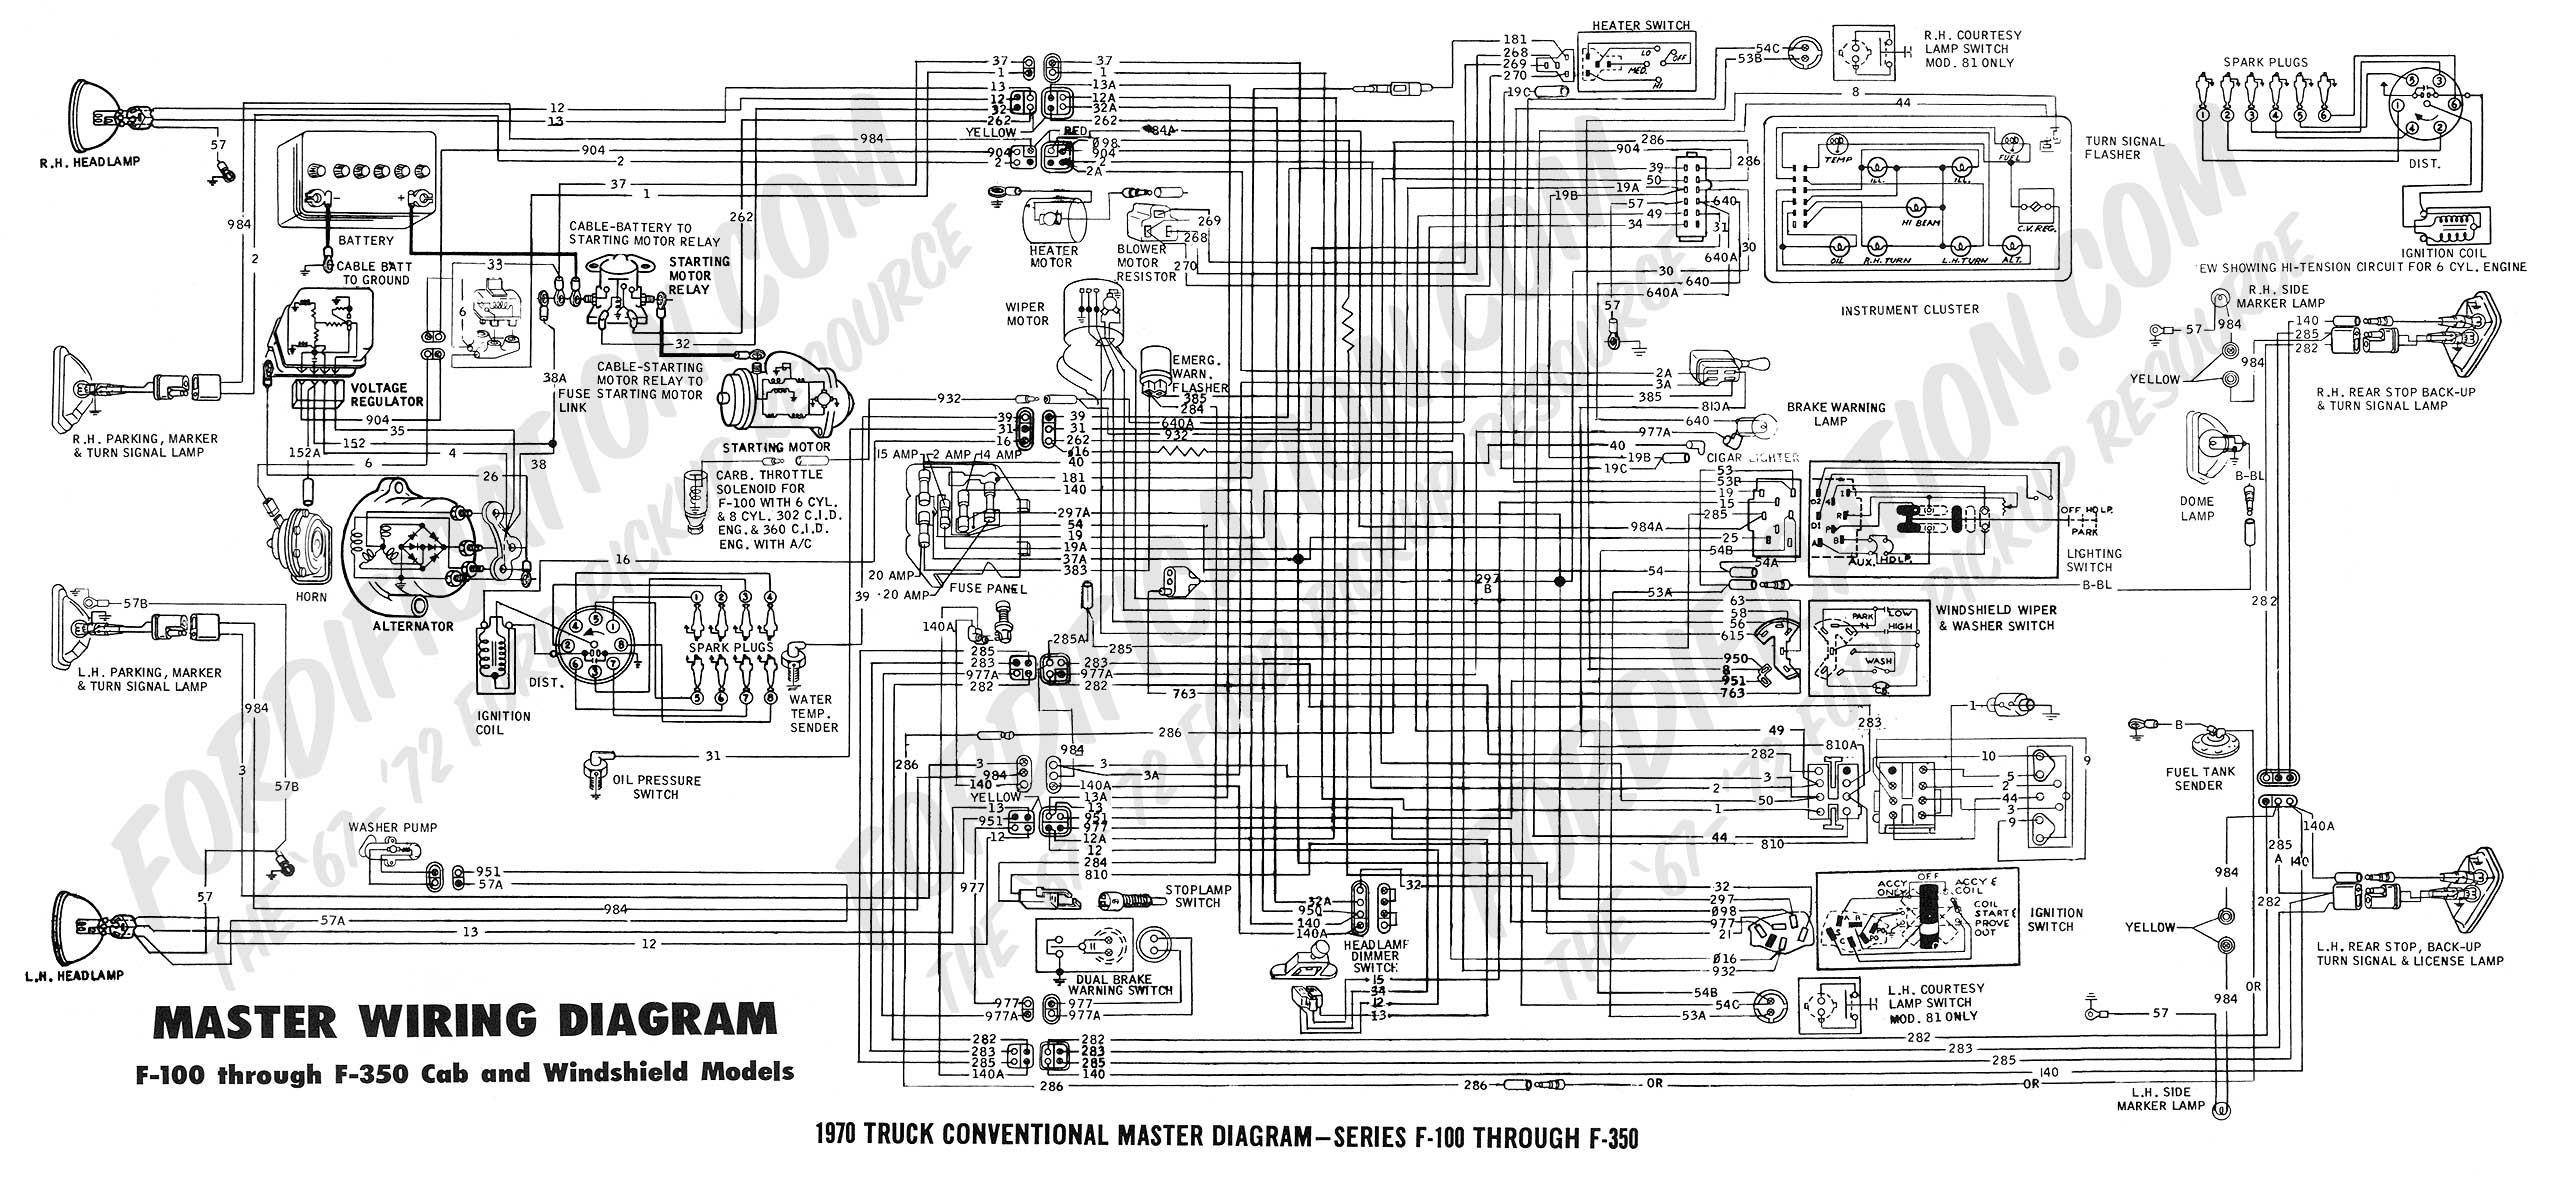 1985 F150 Wiring Diagram Wiring Diagram Yer